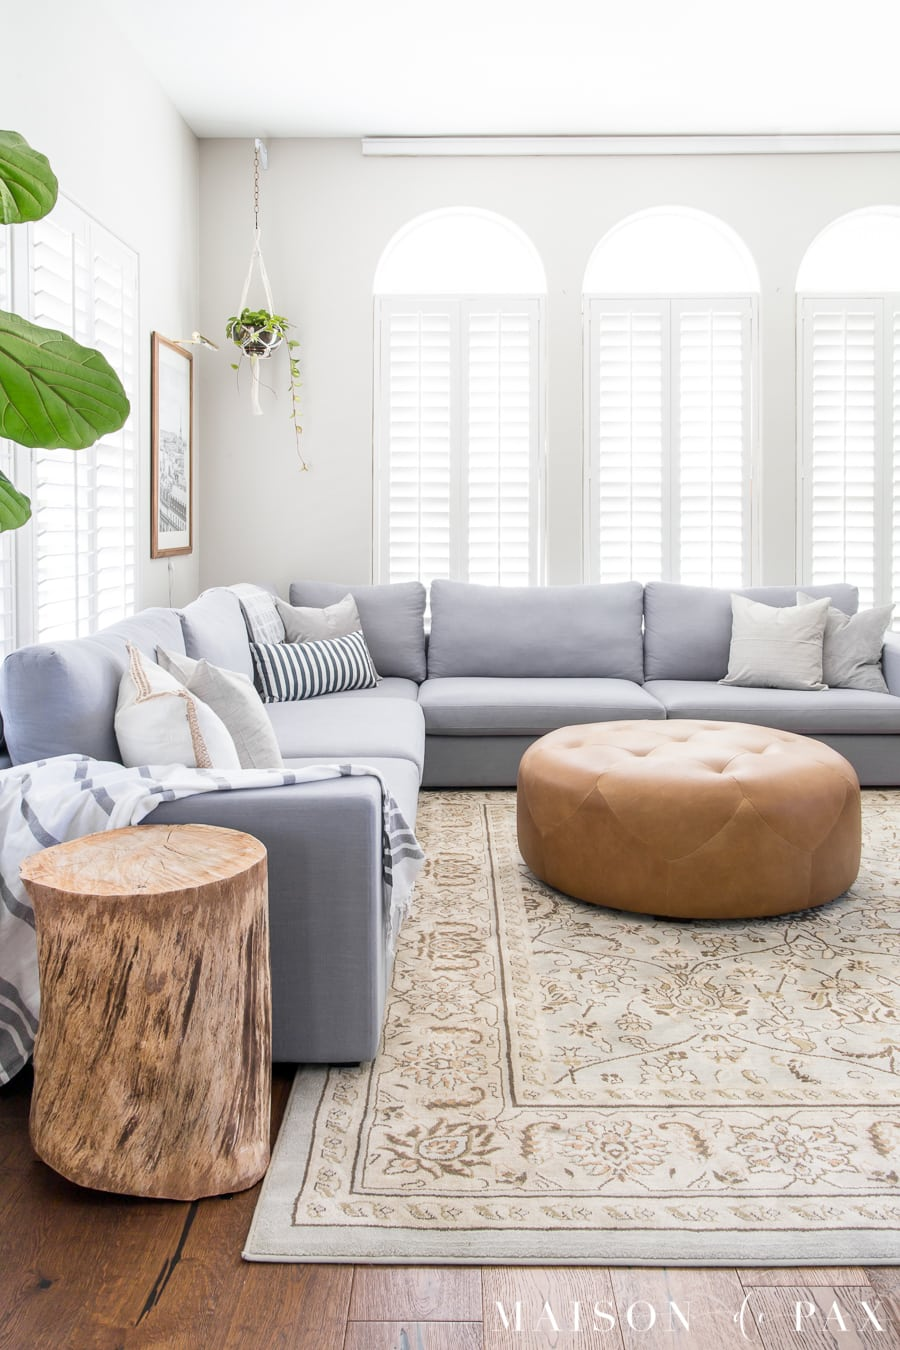 How to decorate a living room with a sectional - Maison de Pax